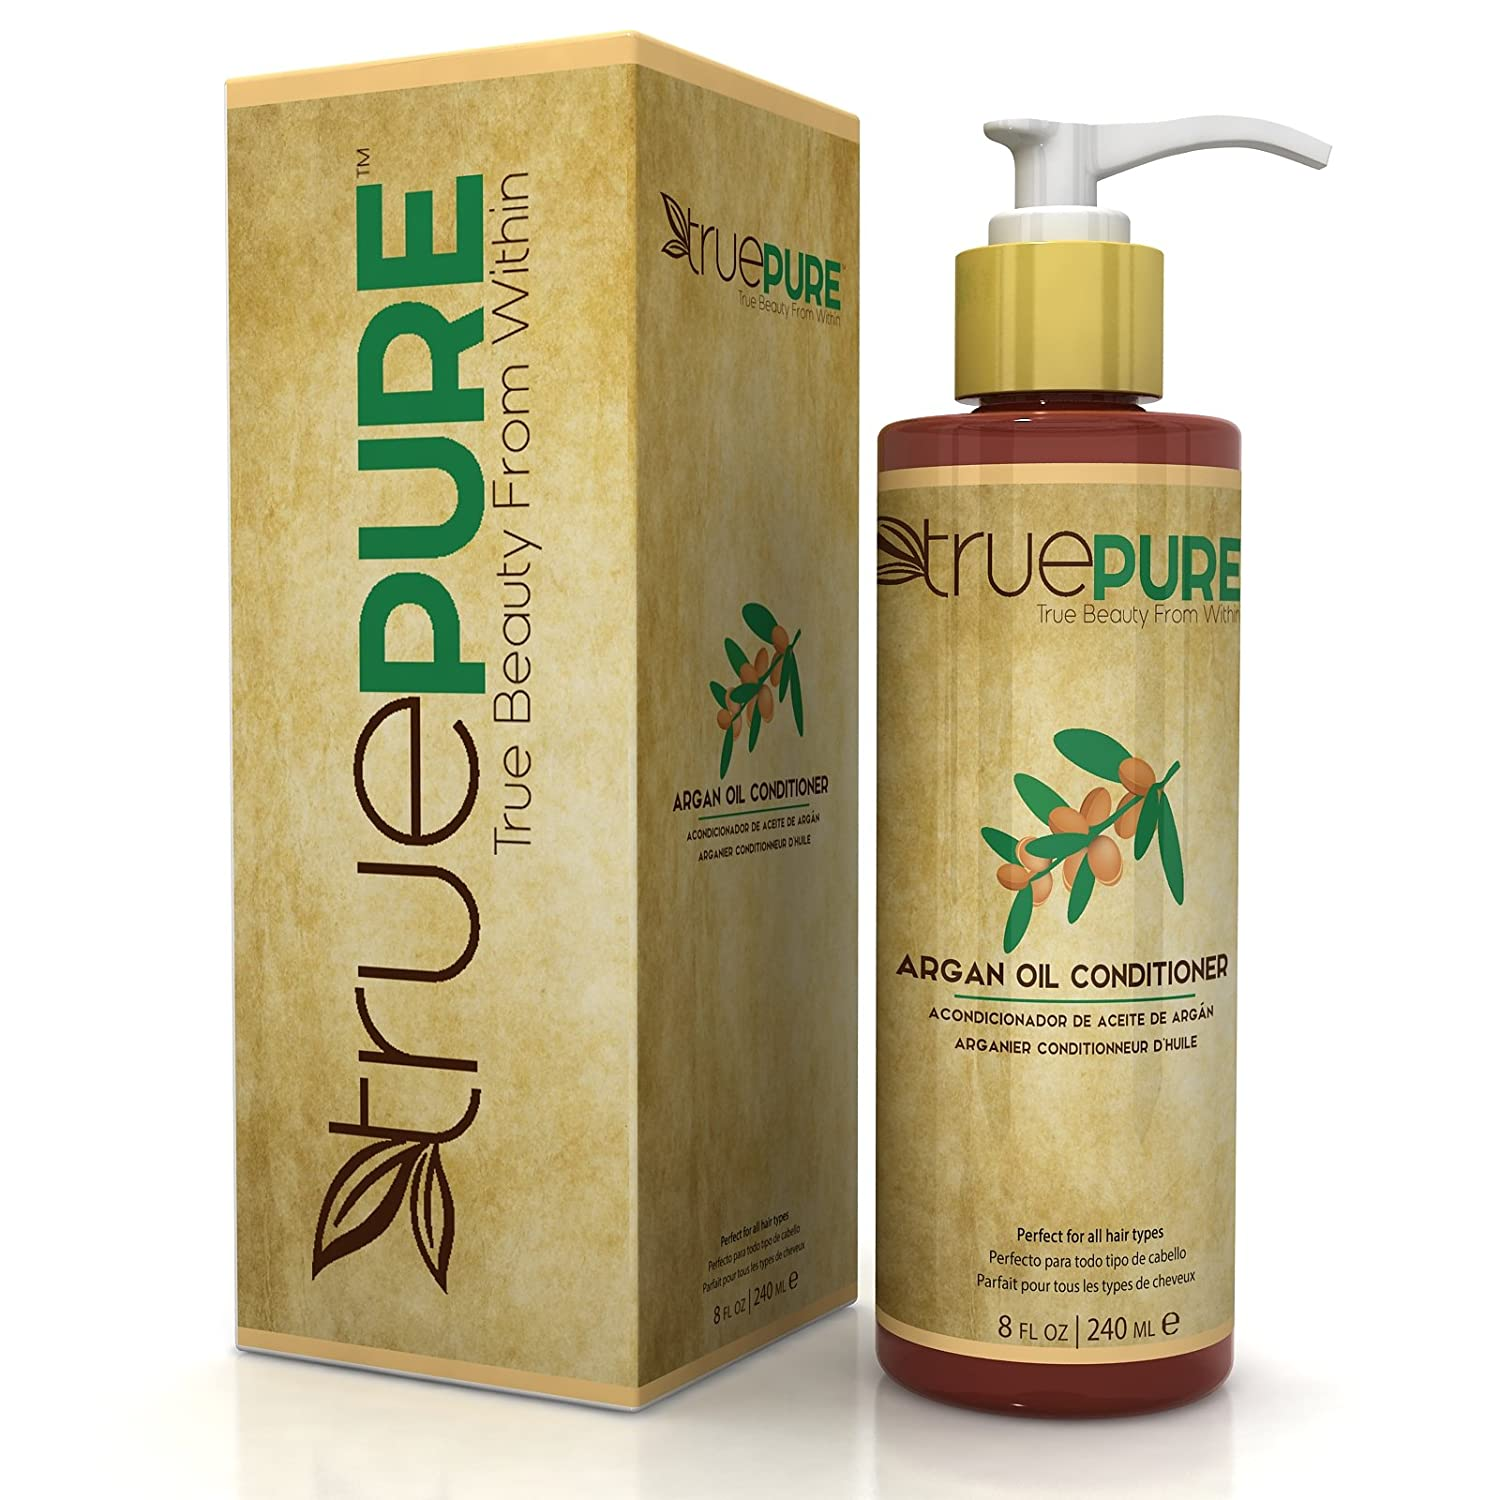 TruePure Agran Oil Conditioner With ArganPure Complex - Natural, Unscented, Plant Based Hair Loss Prevention Formula Without Sulfates or Parabens For Healthy Hair Growth - 8oz